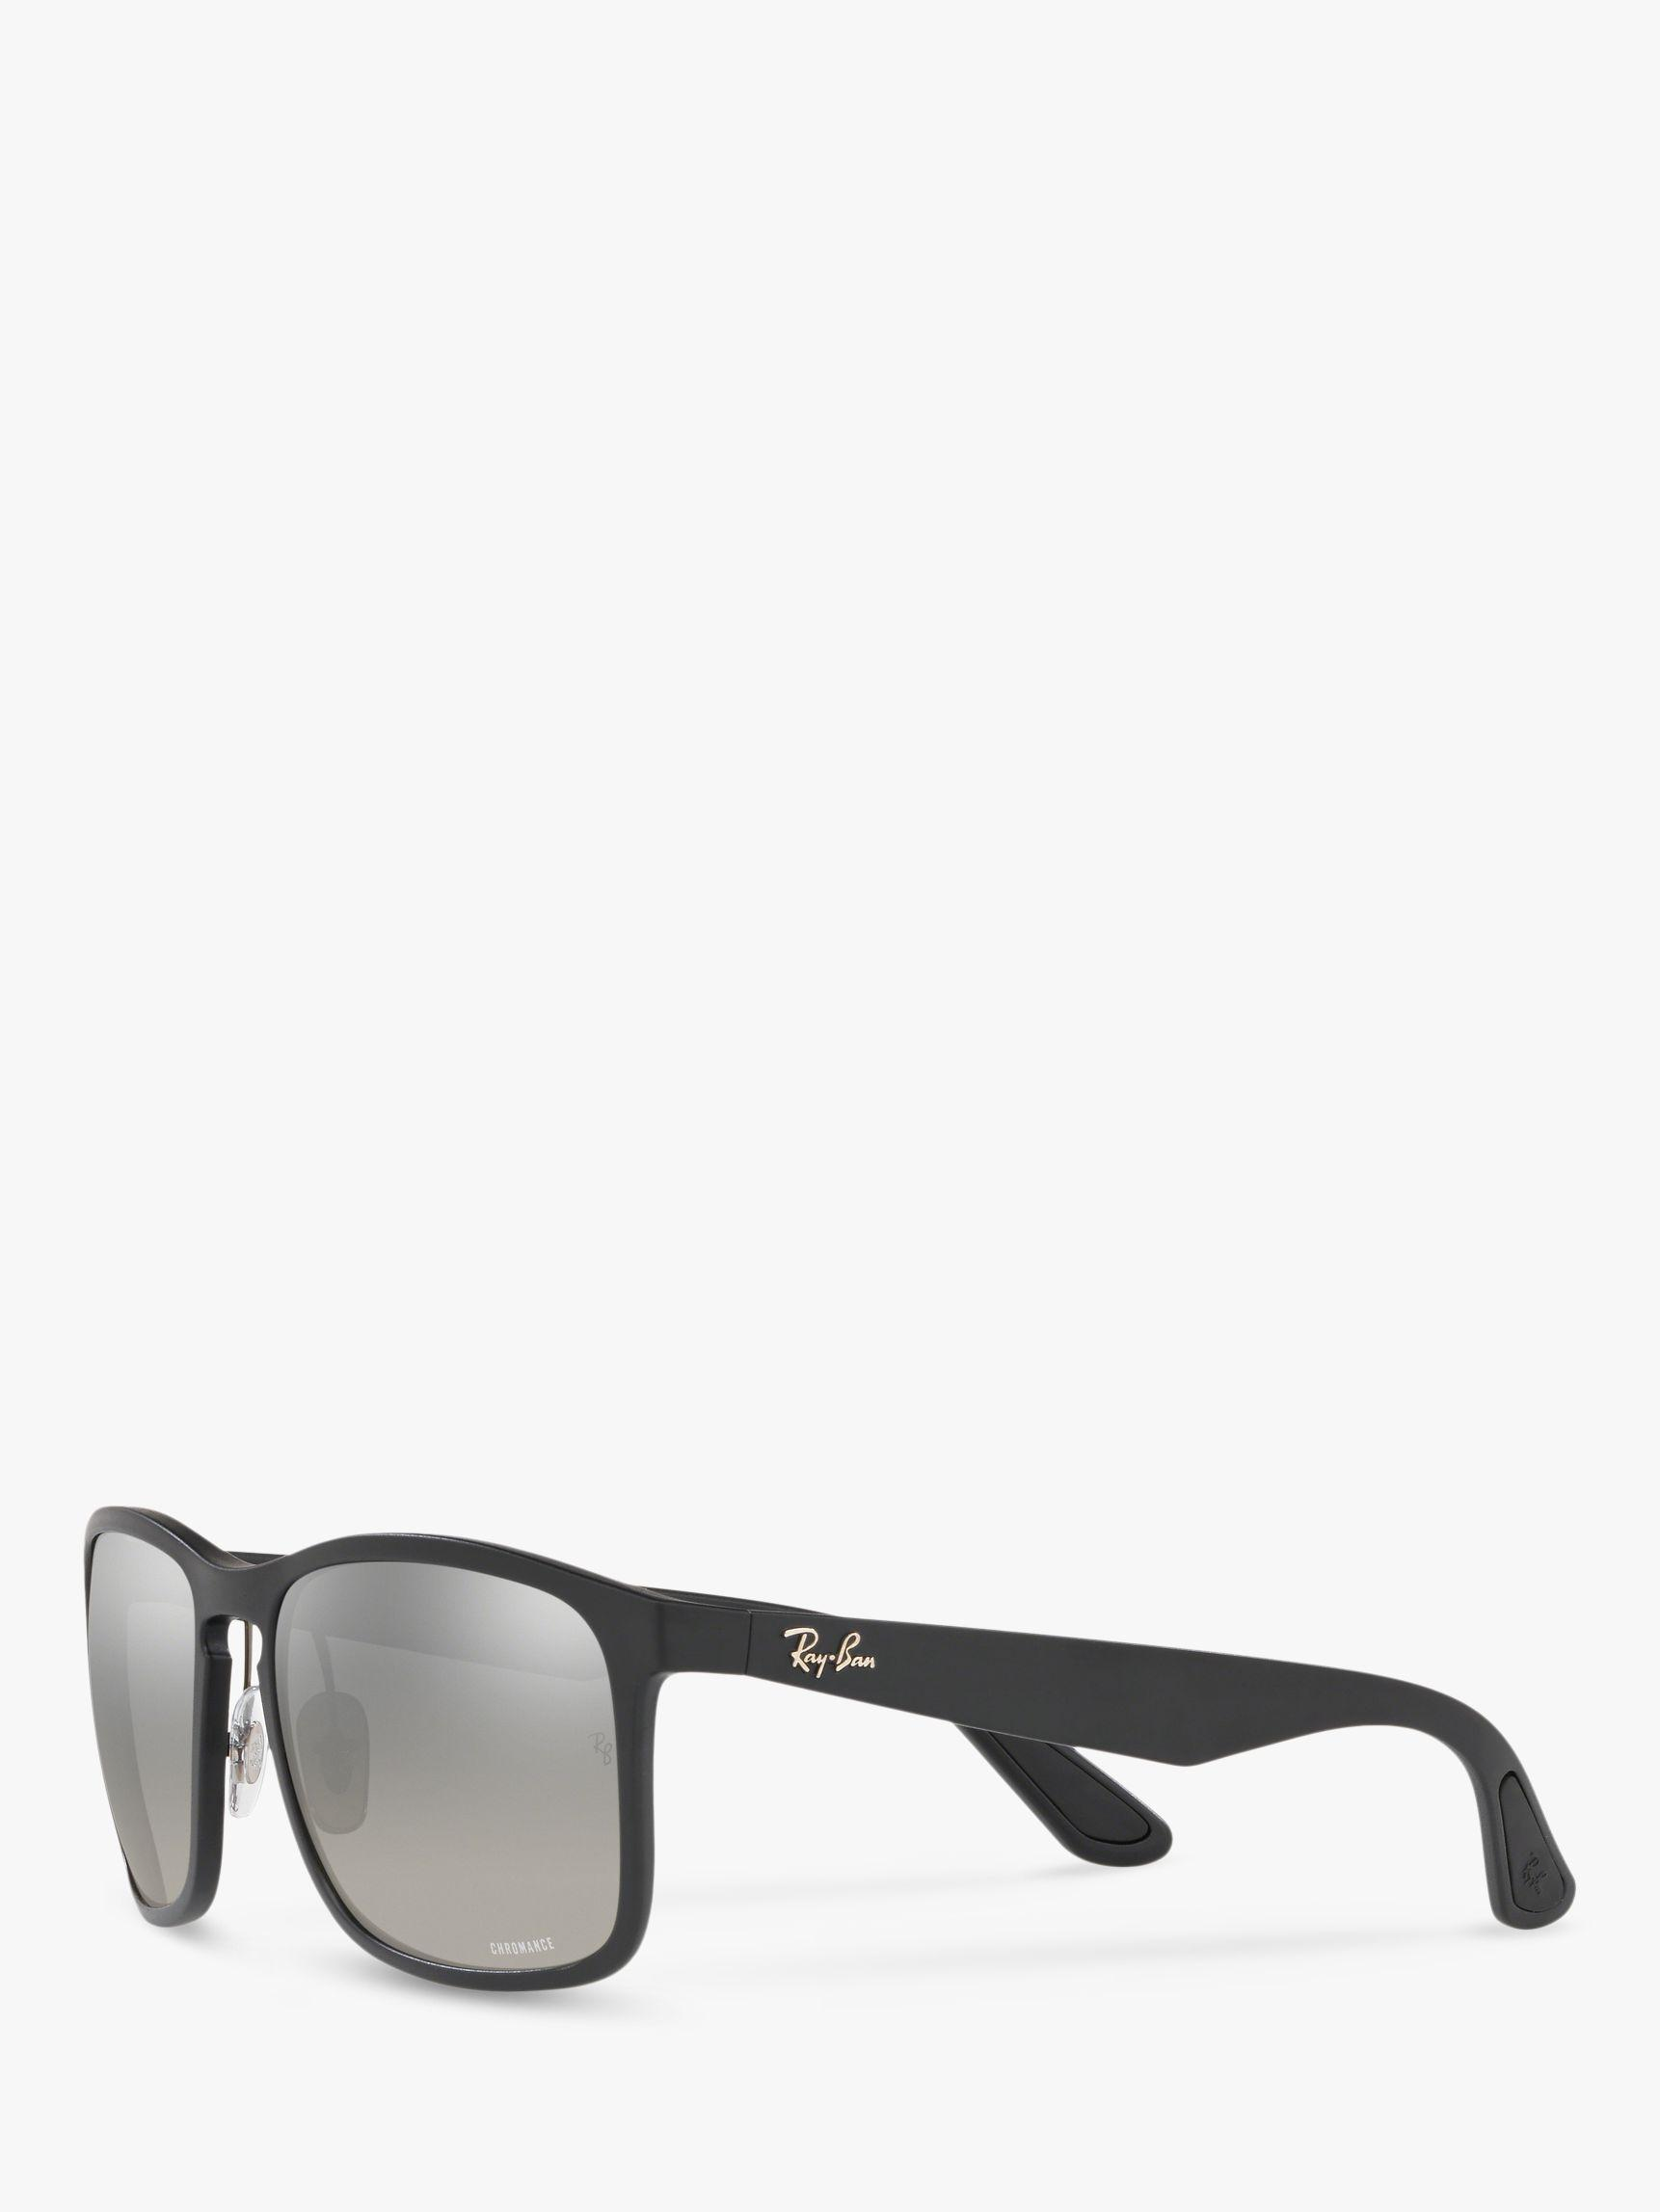 55211e1a3b Ray-Ban Rb4264 Polarised D-frame Sunglasses in Black for Men - Lyst